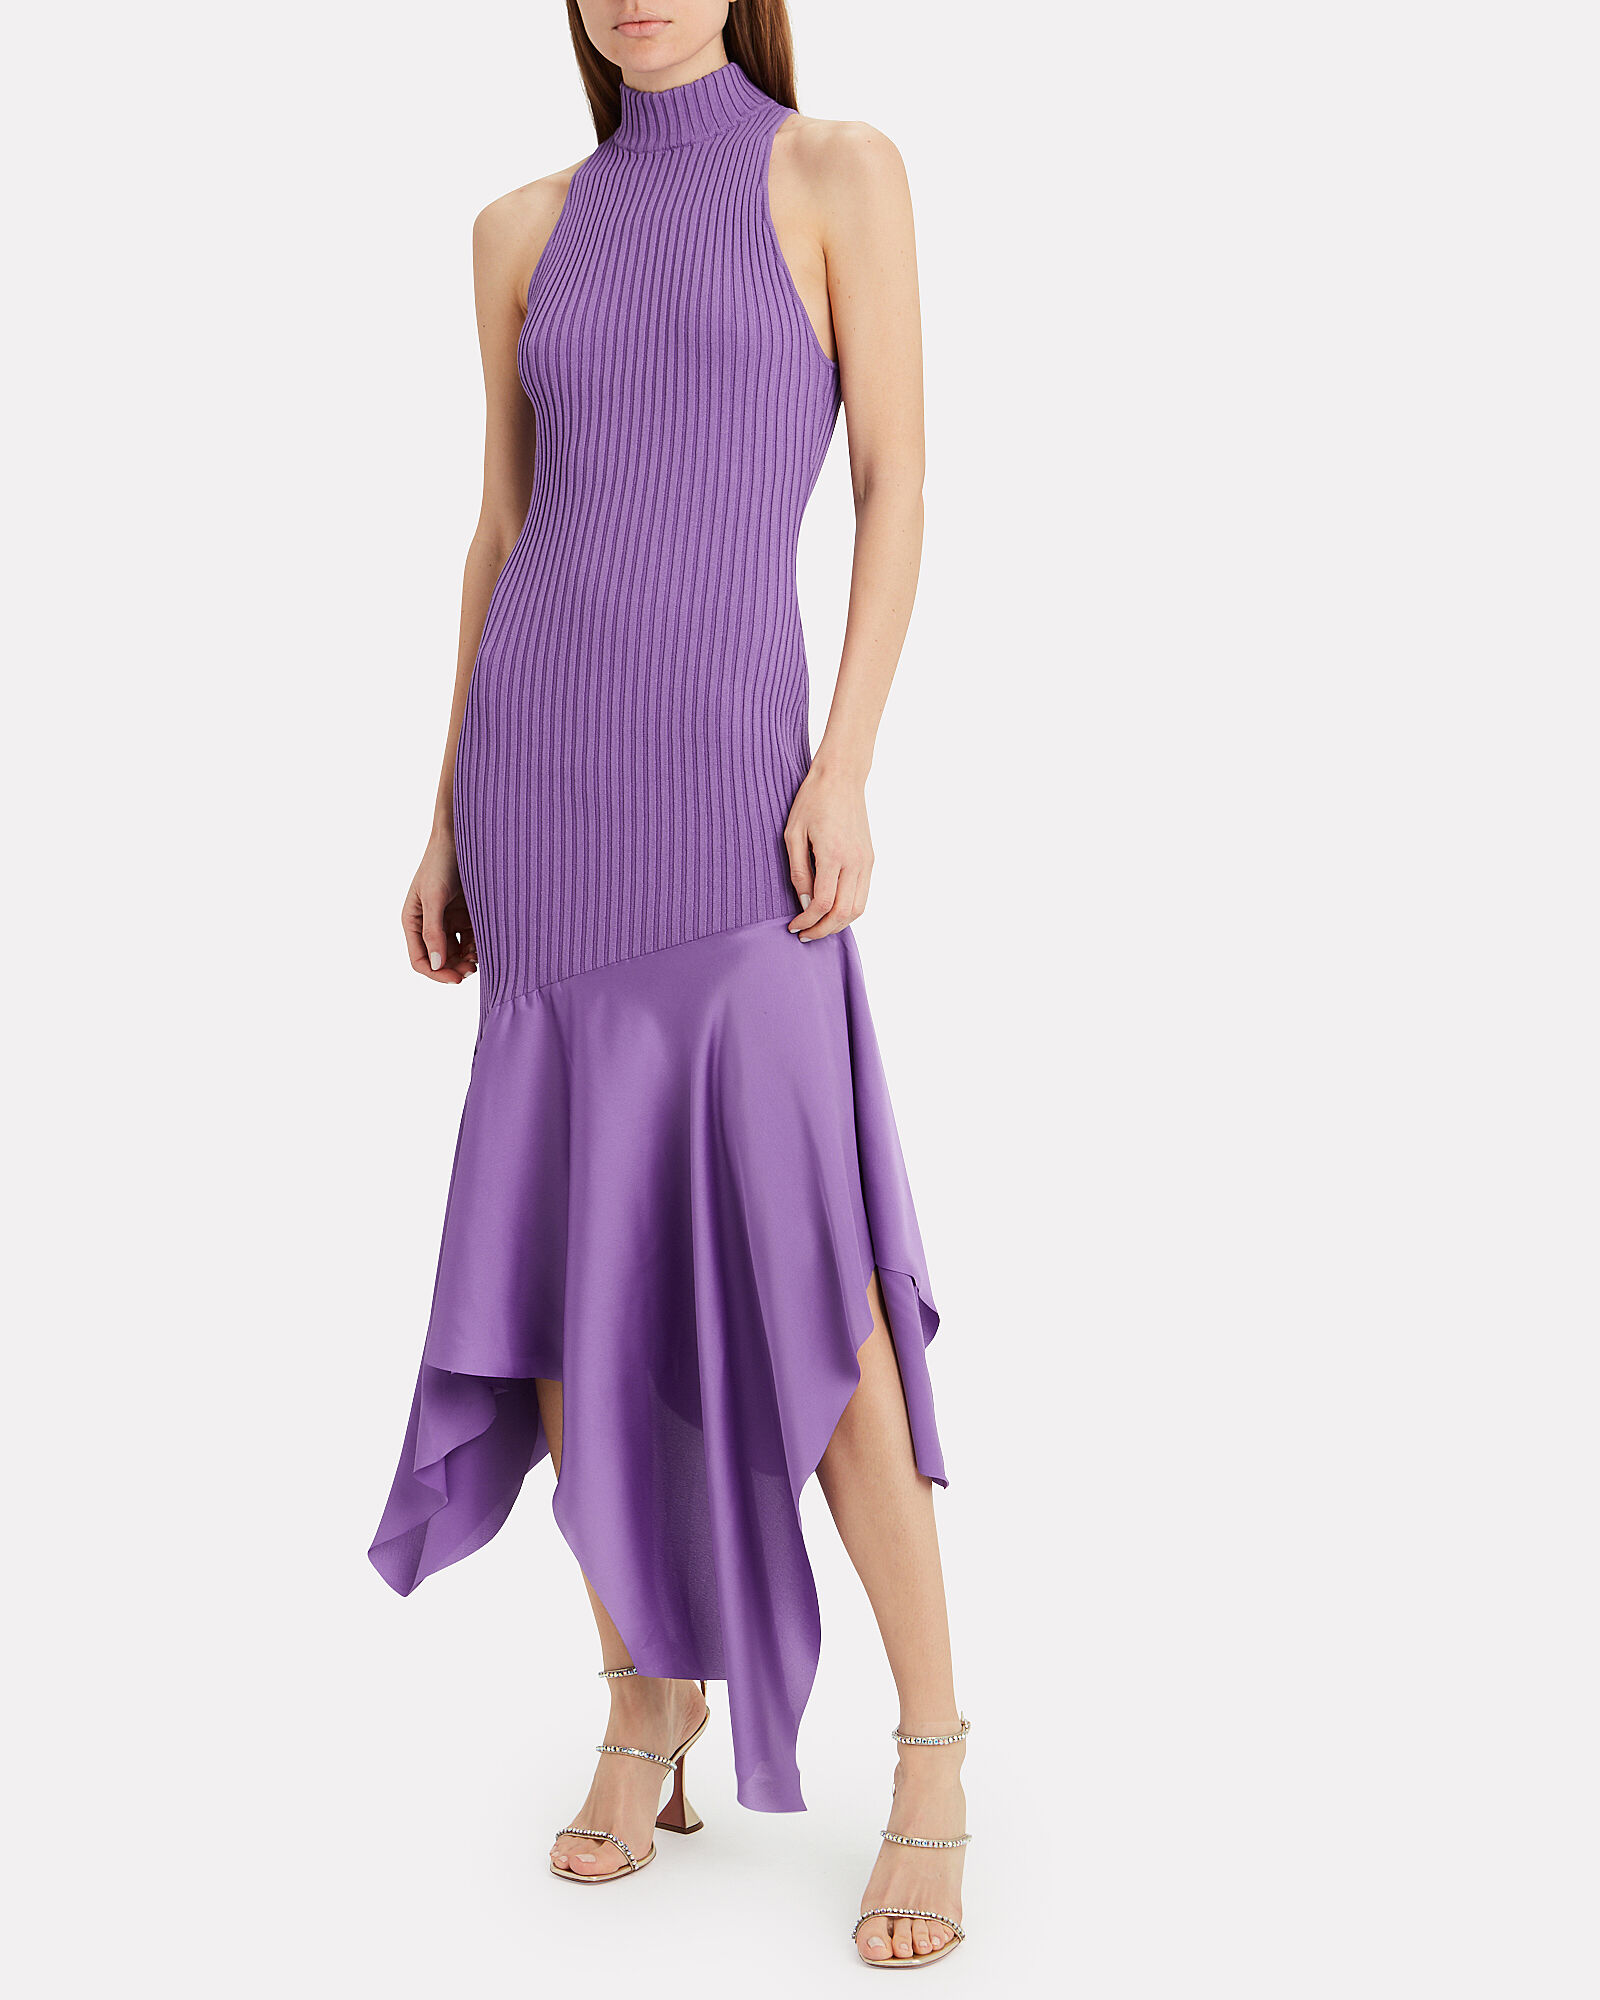 Dilan Ribbed Dress, PURPLE, hi-res